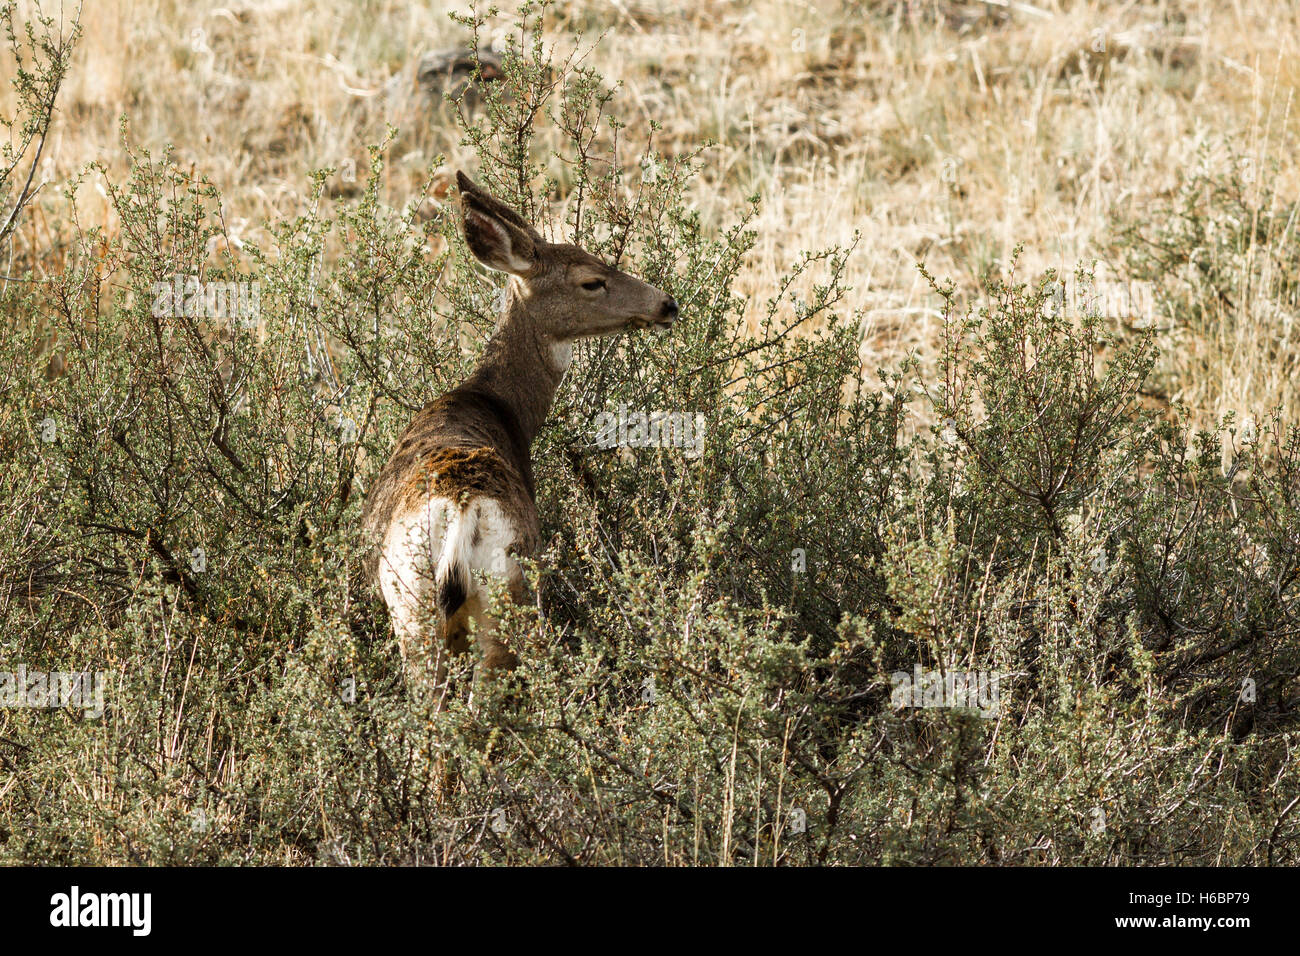 White tail deer eating brush. Stock Photo